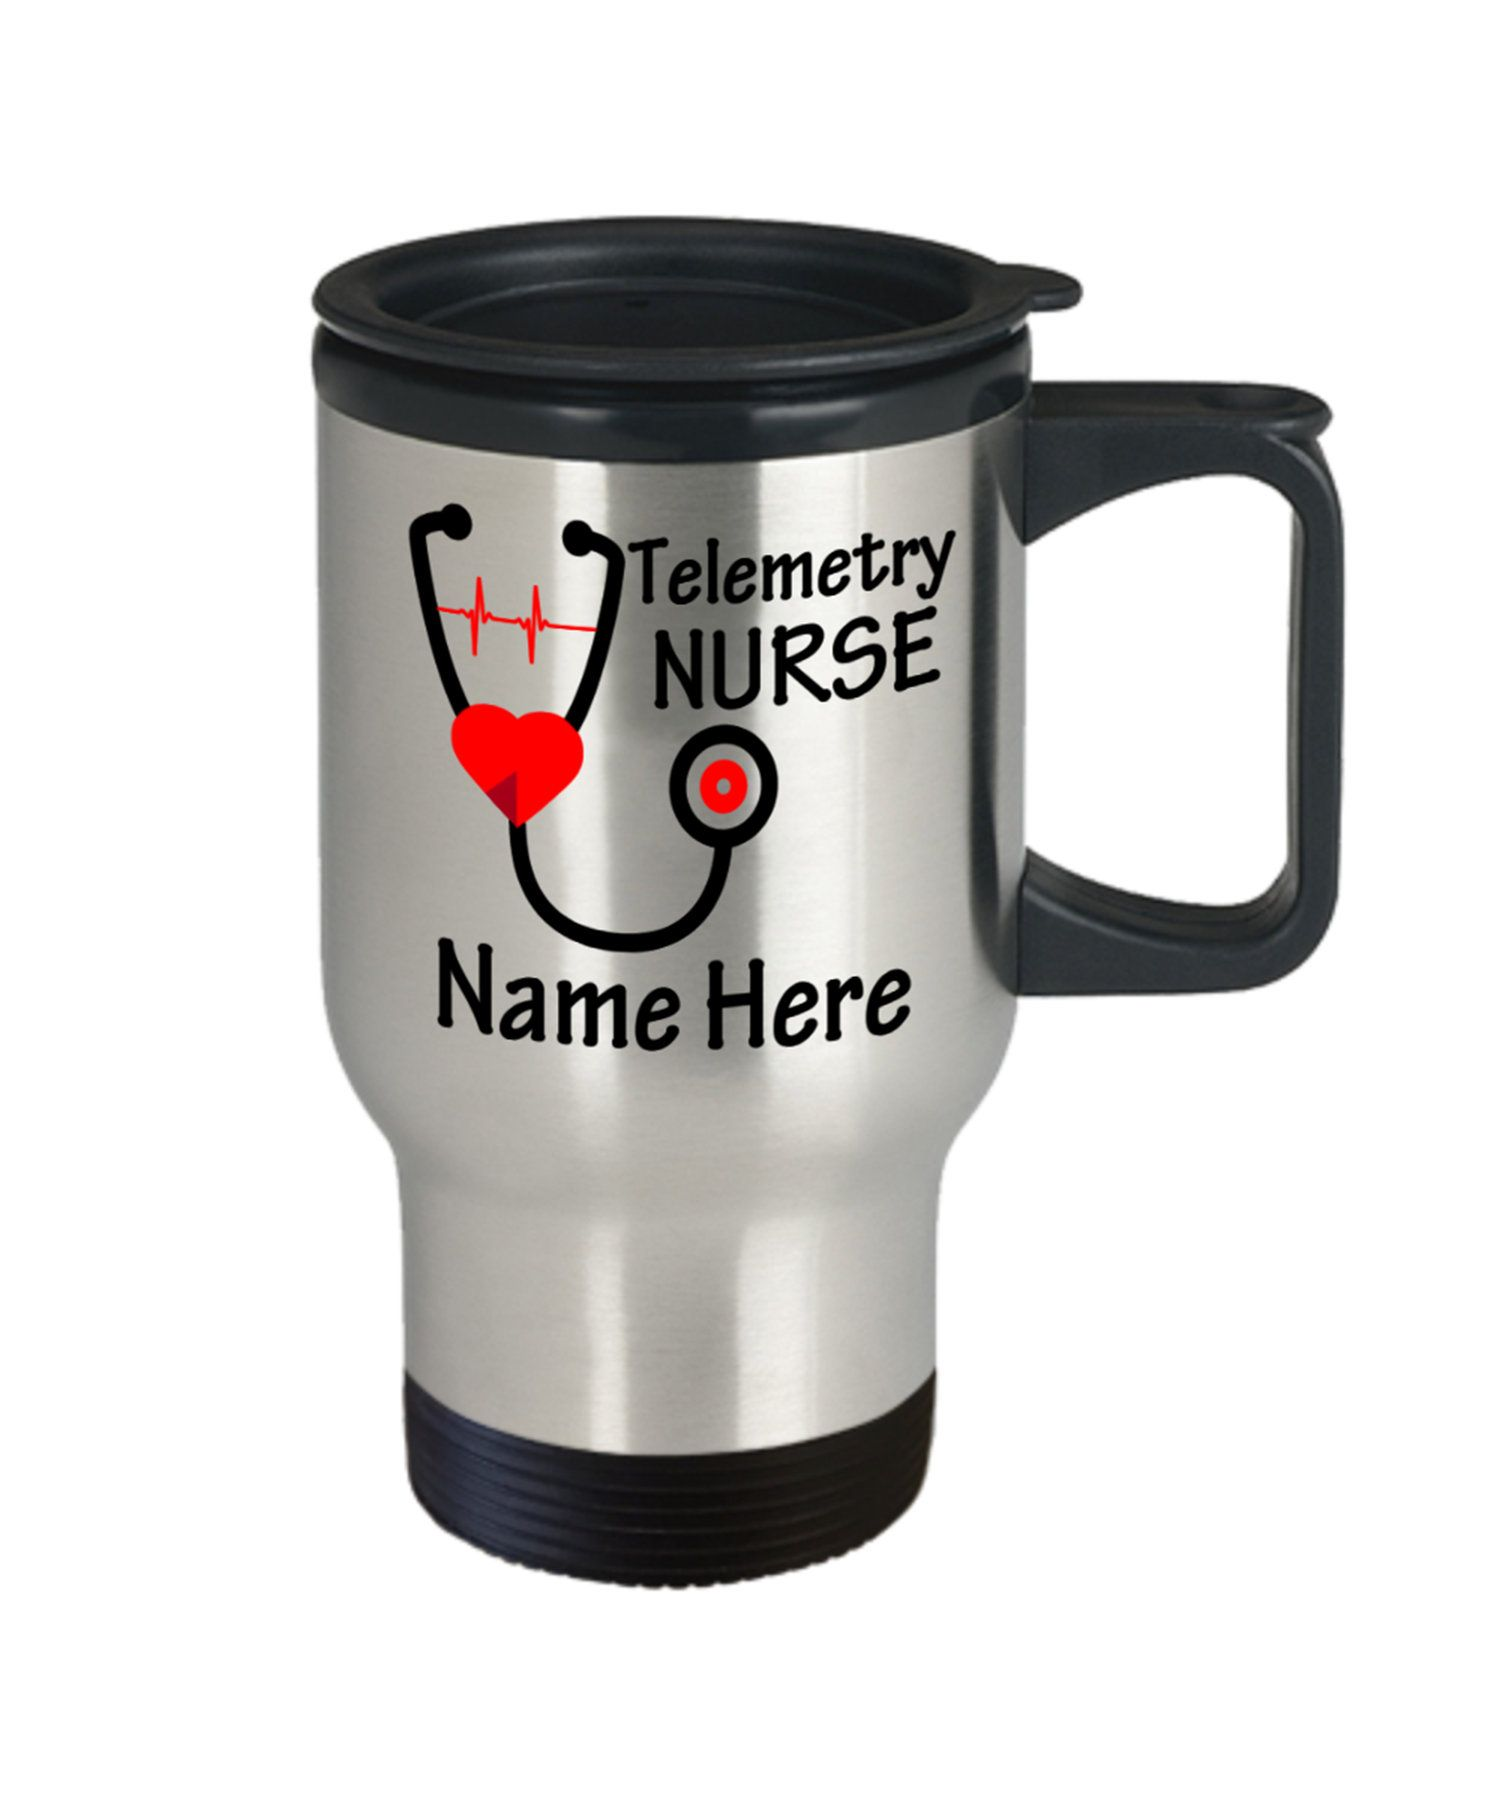 Telemetry Nurse Travel Mug Personalized Custom Name Birthday Christmas Gift Idea For Men Women Dad Mom Coworker Boss Coffee Tea Cup 14oz  #bigbrothergifts #bossgifts #boyfriendgifts #coworkergifts #dadgifts #giftsforcoworkers #giftsformom #girlfriendgifts #husbandgifts #nursegifts #officegifts #sistergifts #wifegifts:separator: #bosscoffee